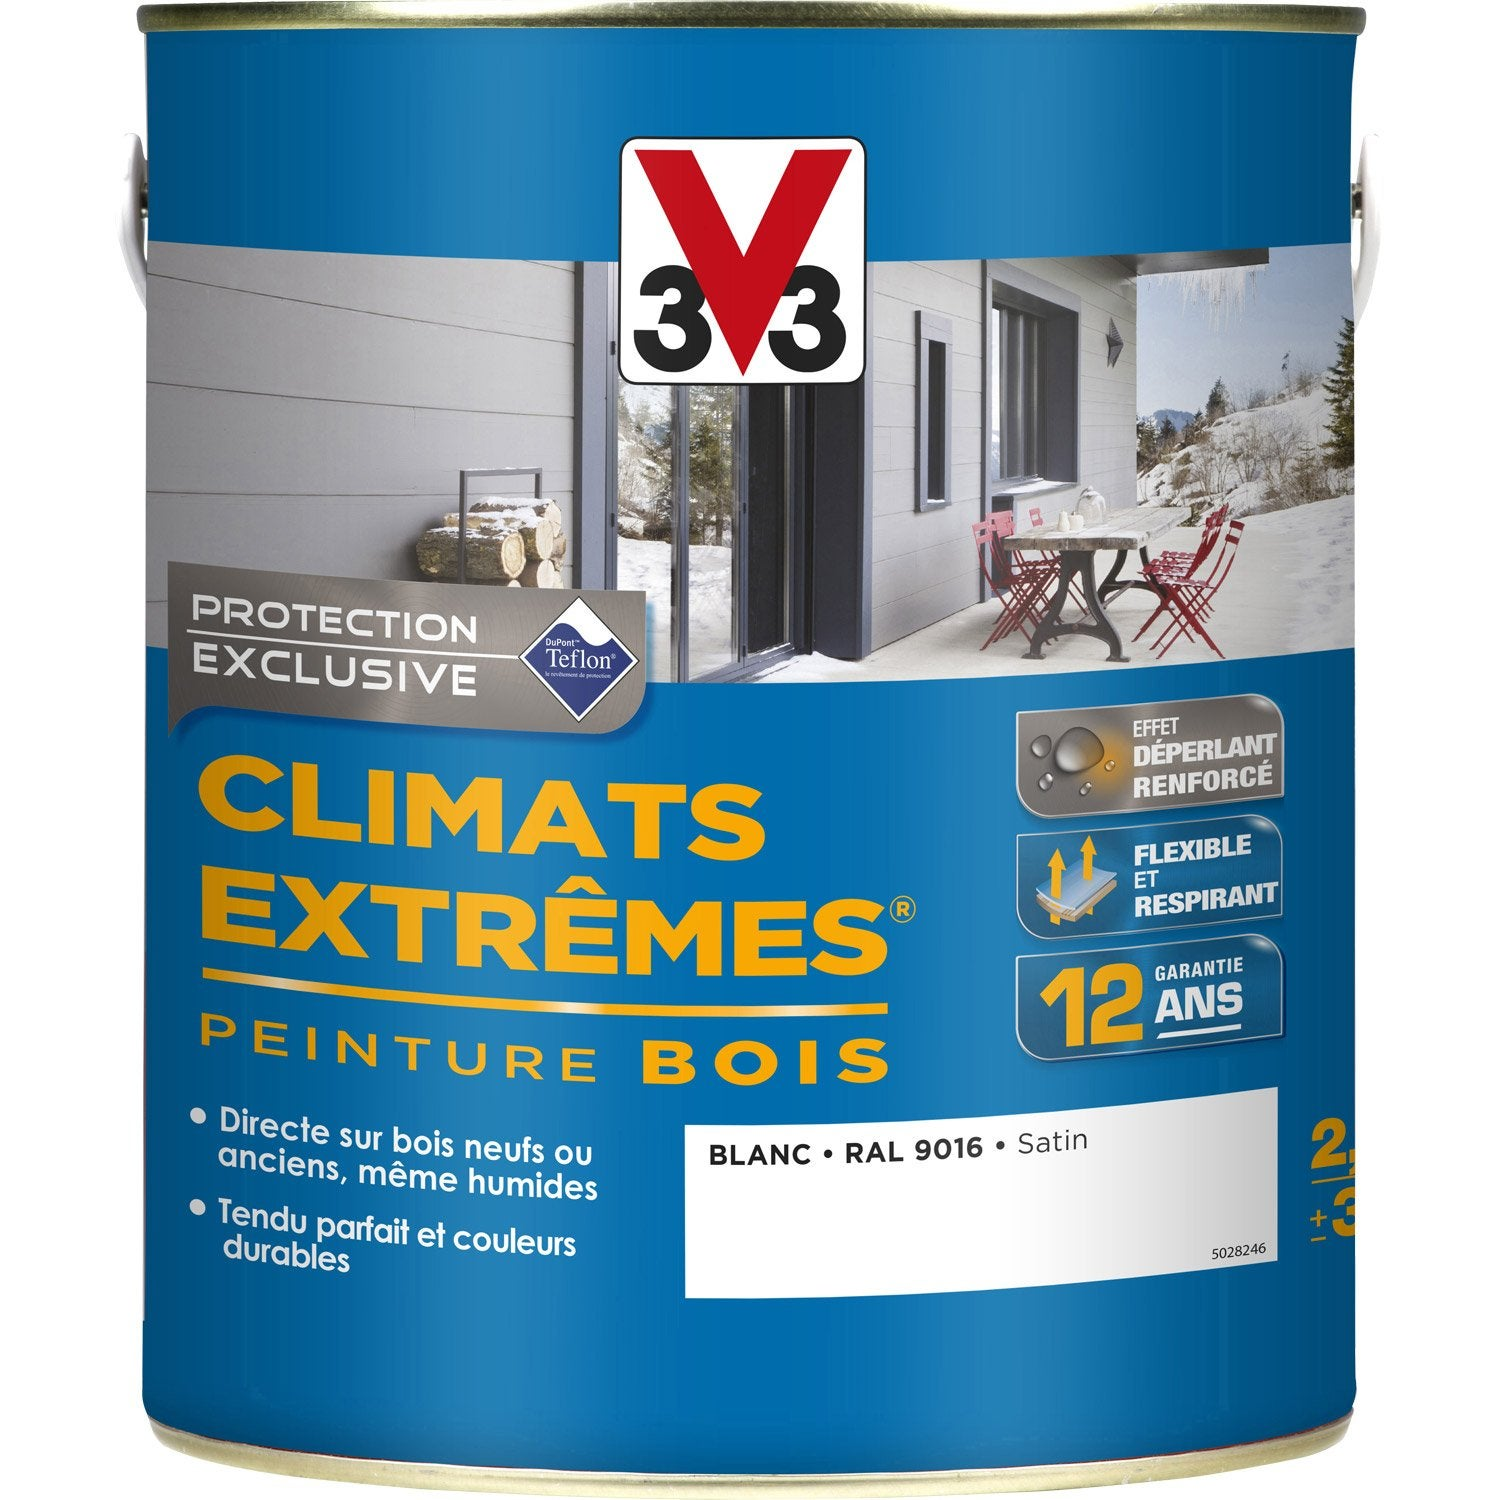 Peinture bois ext rieur climats extr mes v33 satin blanc for Cavalletto pittore leroy merlin